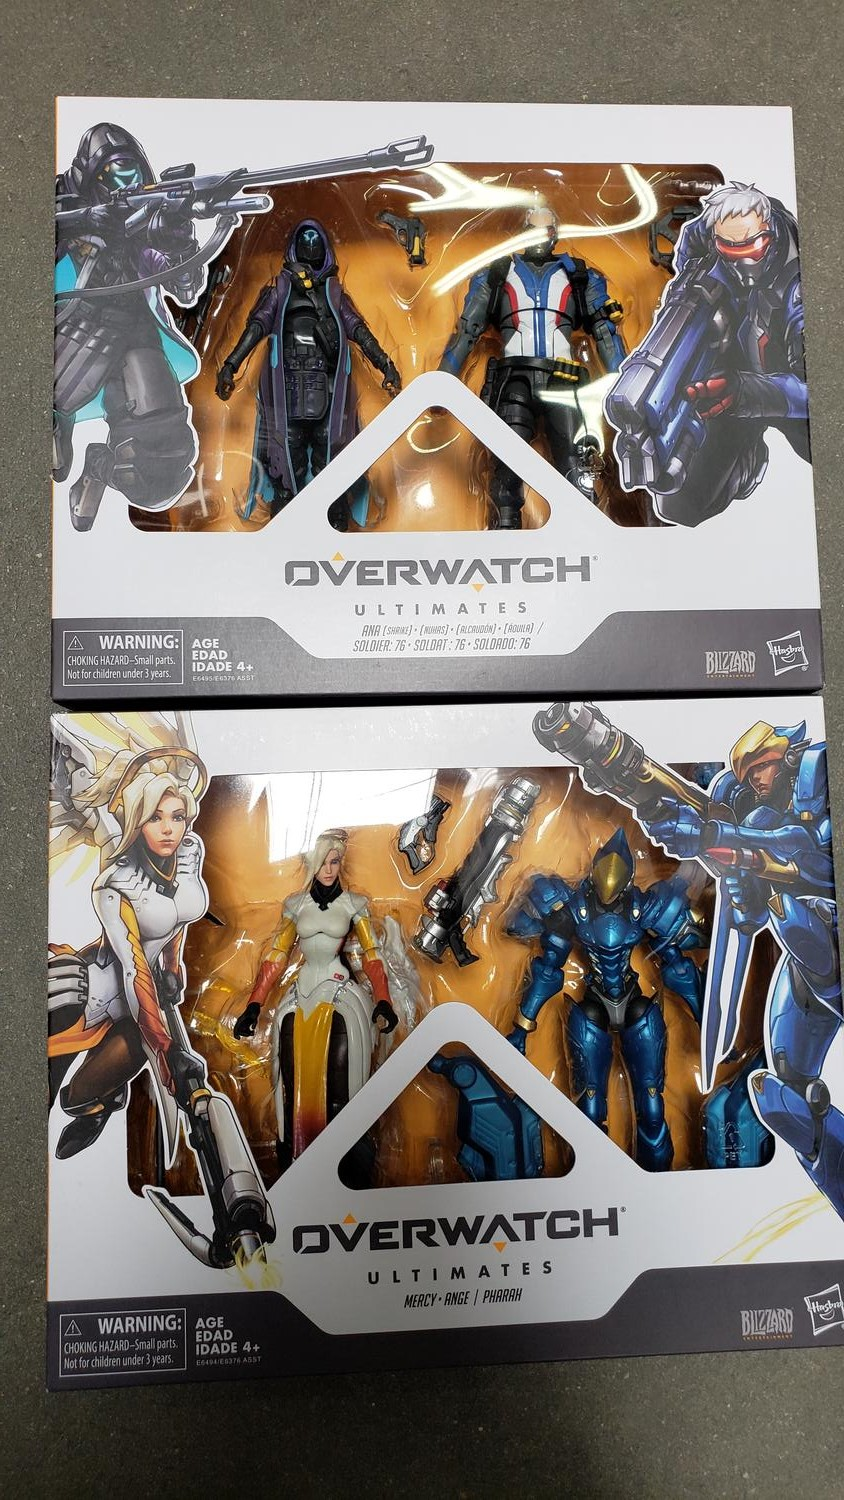 Hasbro Overwatch Figures Hitting Shelves